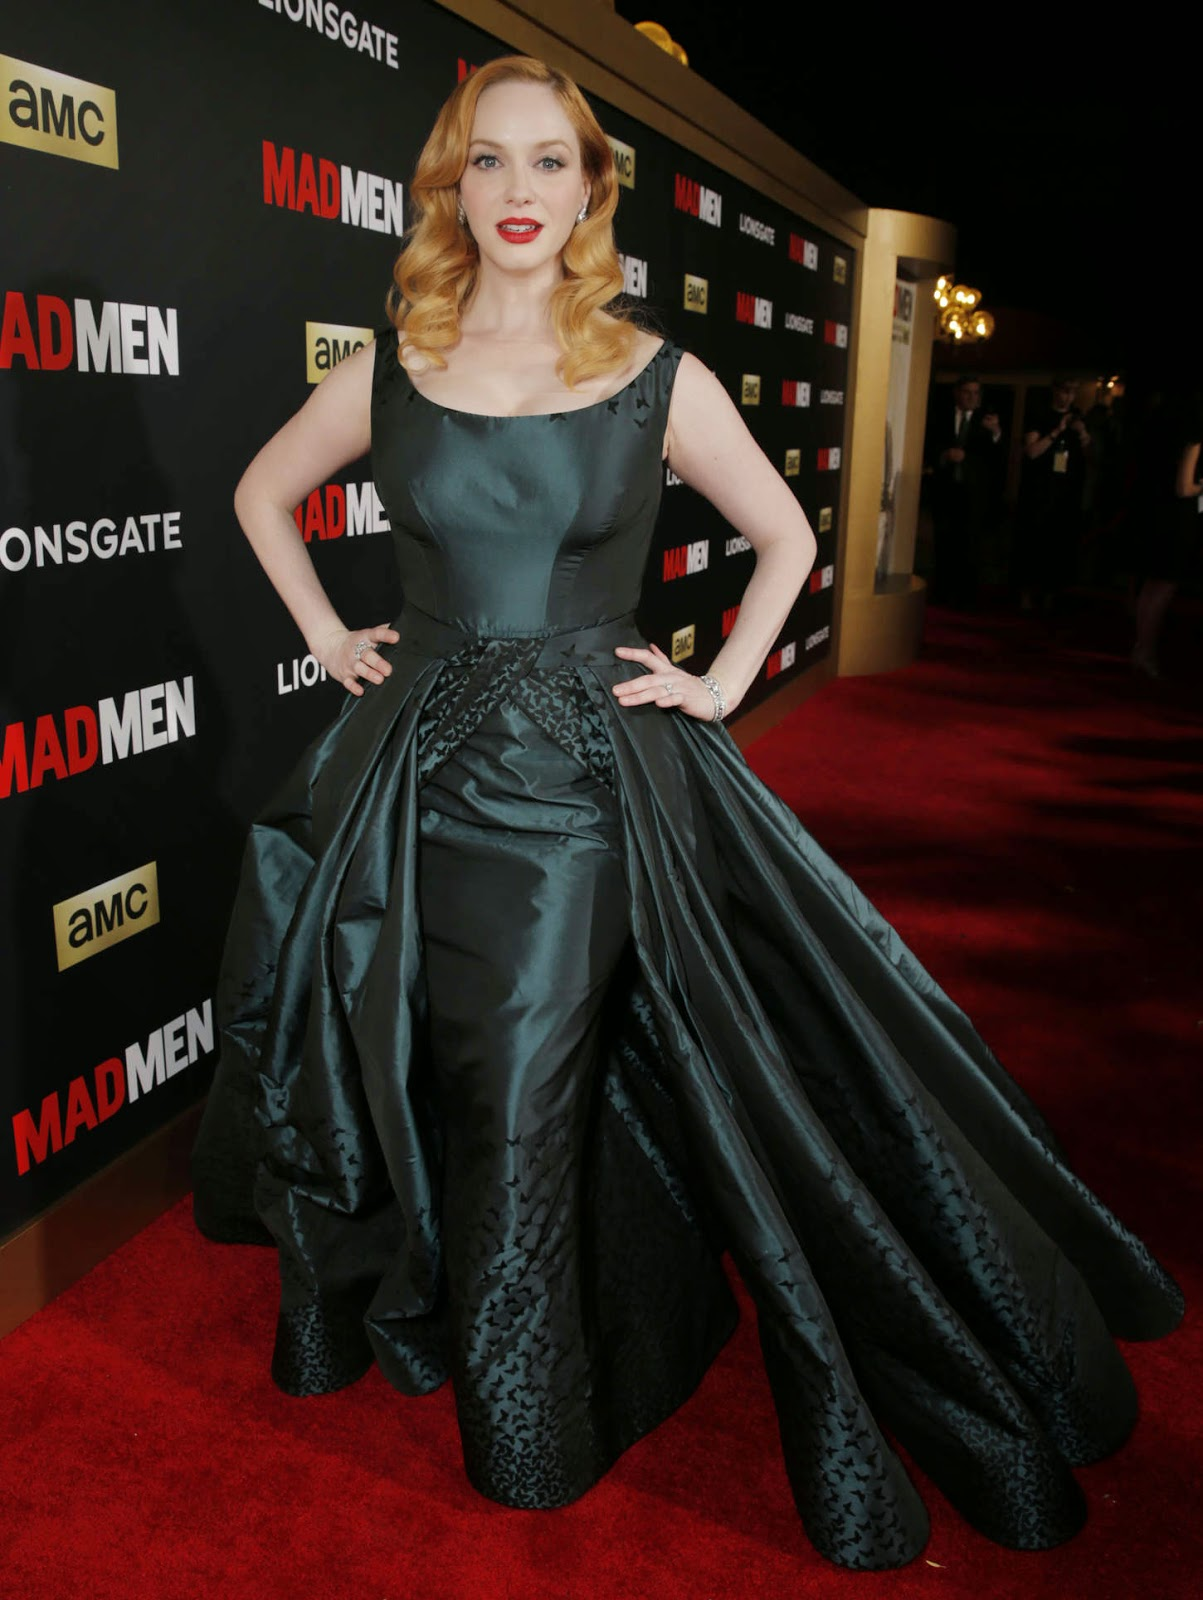 Christina Hendricks in a Zac Posen ball gown at the AMC 'Mad Men' Black and Red Ball in LA